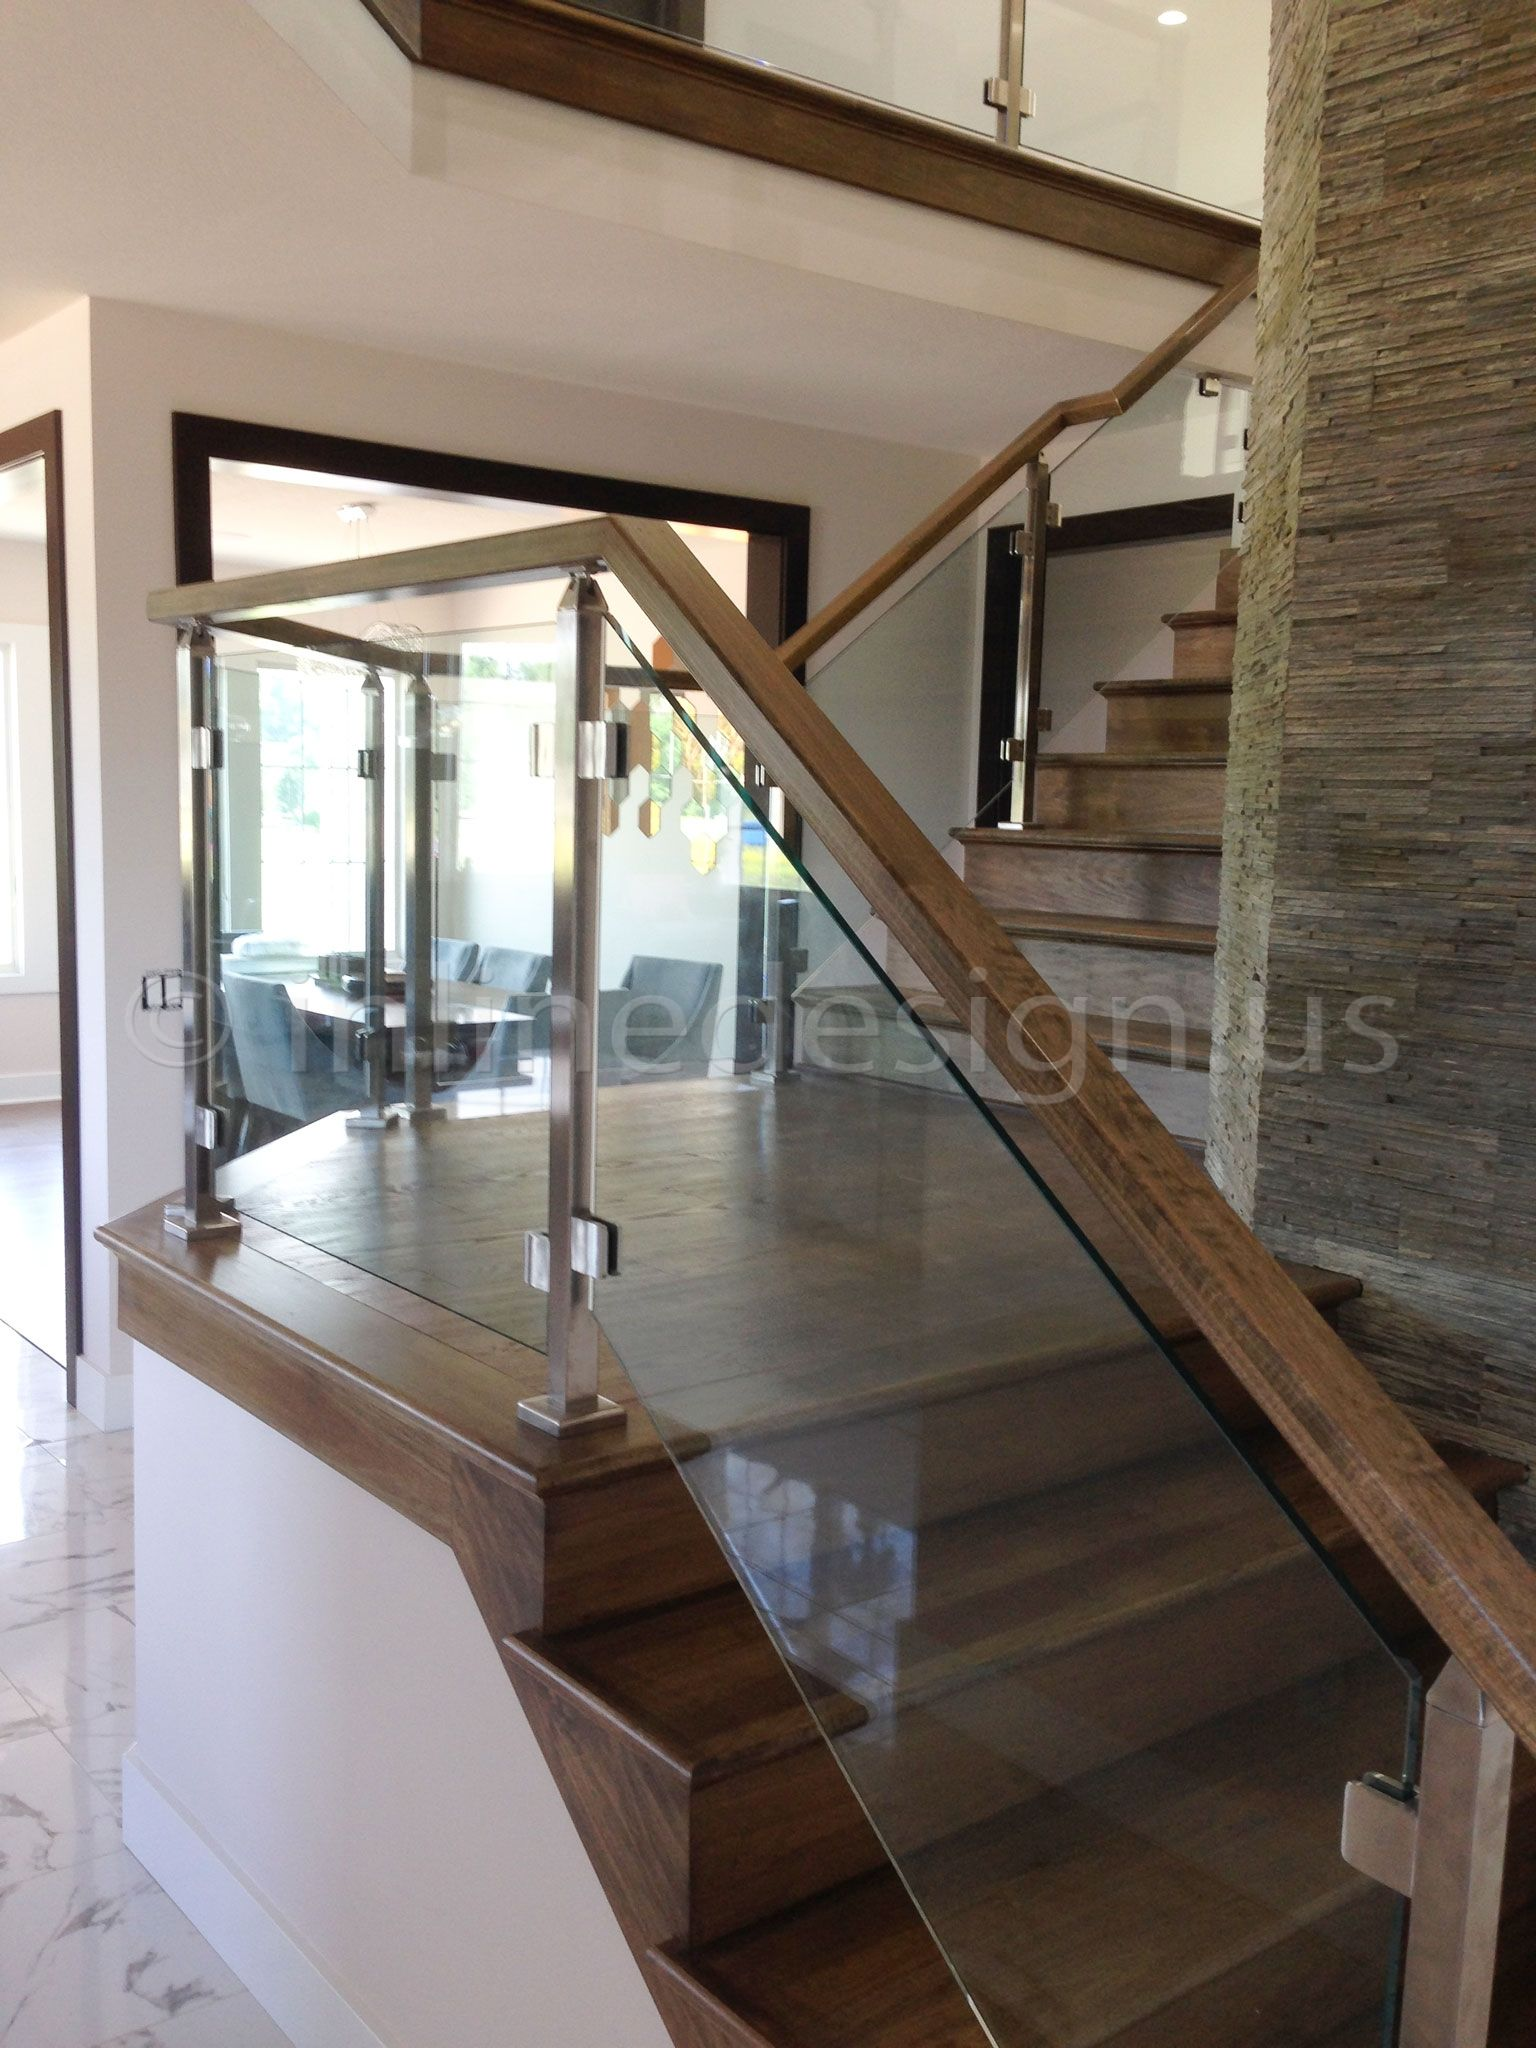 Glass Panels In A Metal Rail For Staircase Description From   Glass Stair Rails And Banisters   Photo Gallery   Perspex   Thick Solid Oak Stair   Mirror   Stair Price